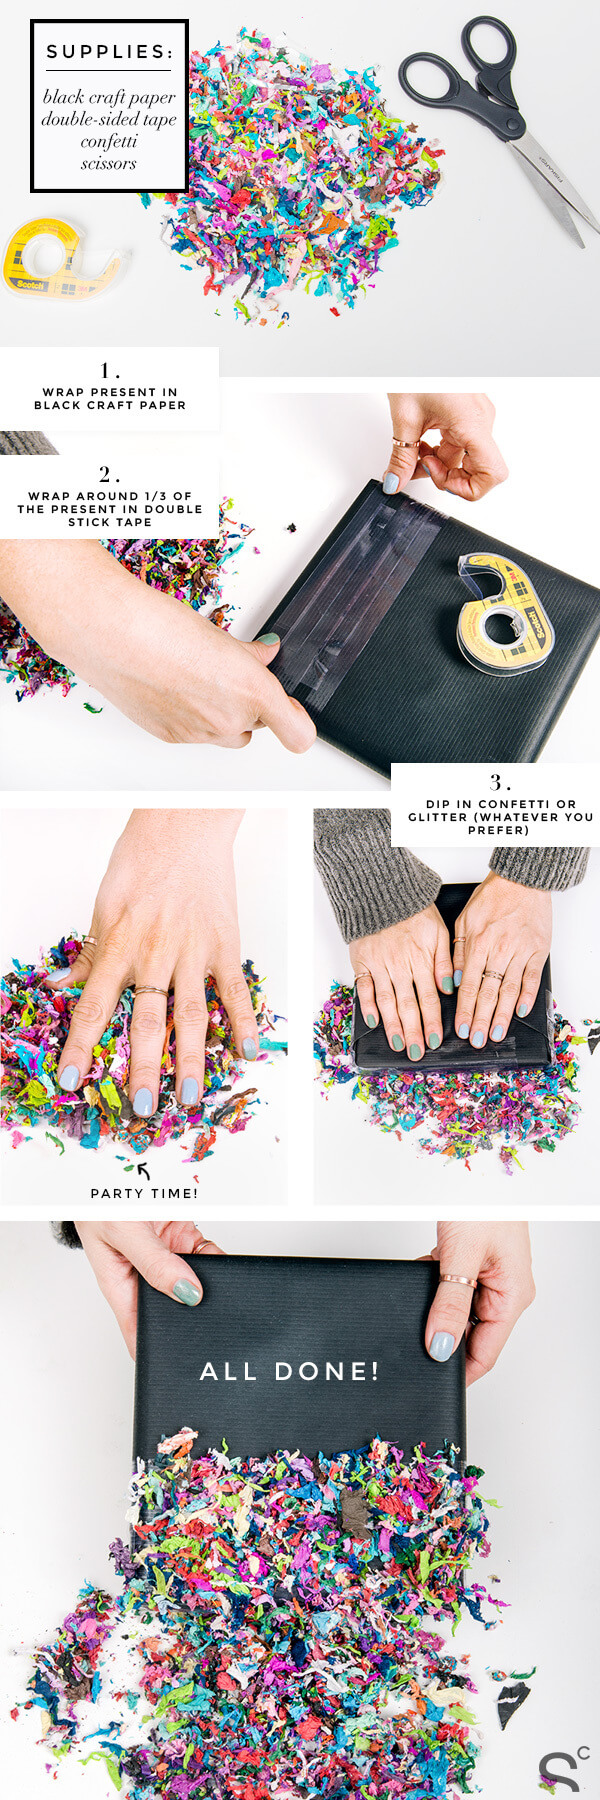 diy-gift-wrapping-with-confetti